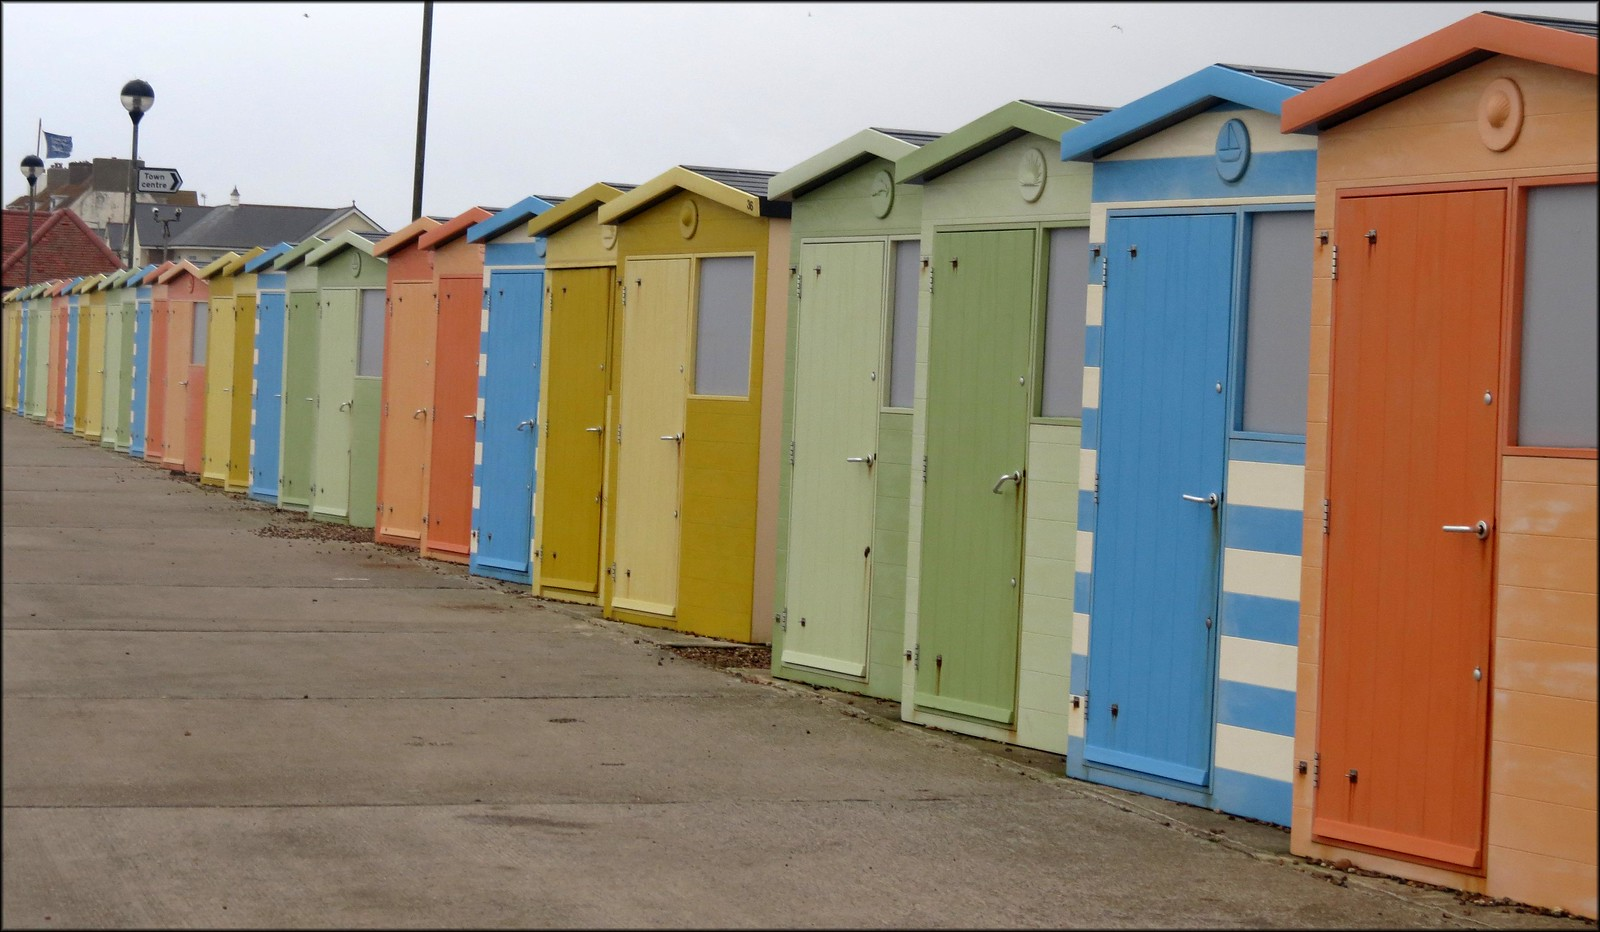 Beach huts on Seaford sea front